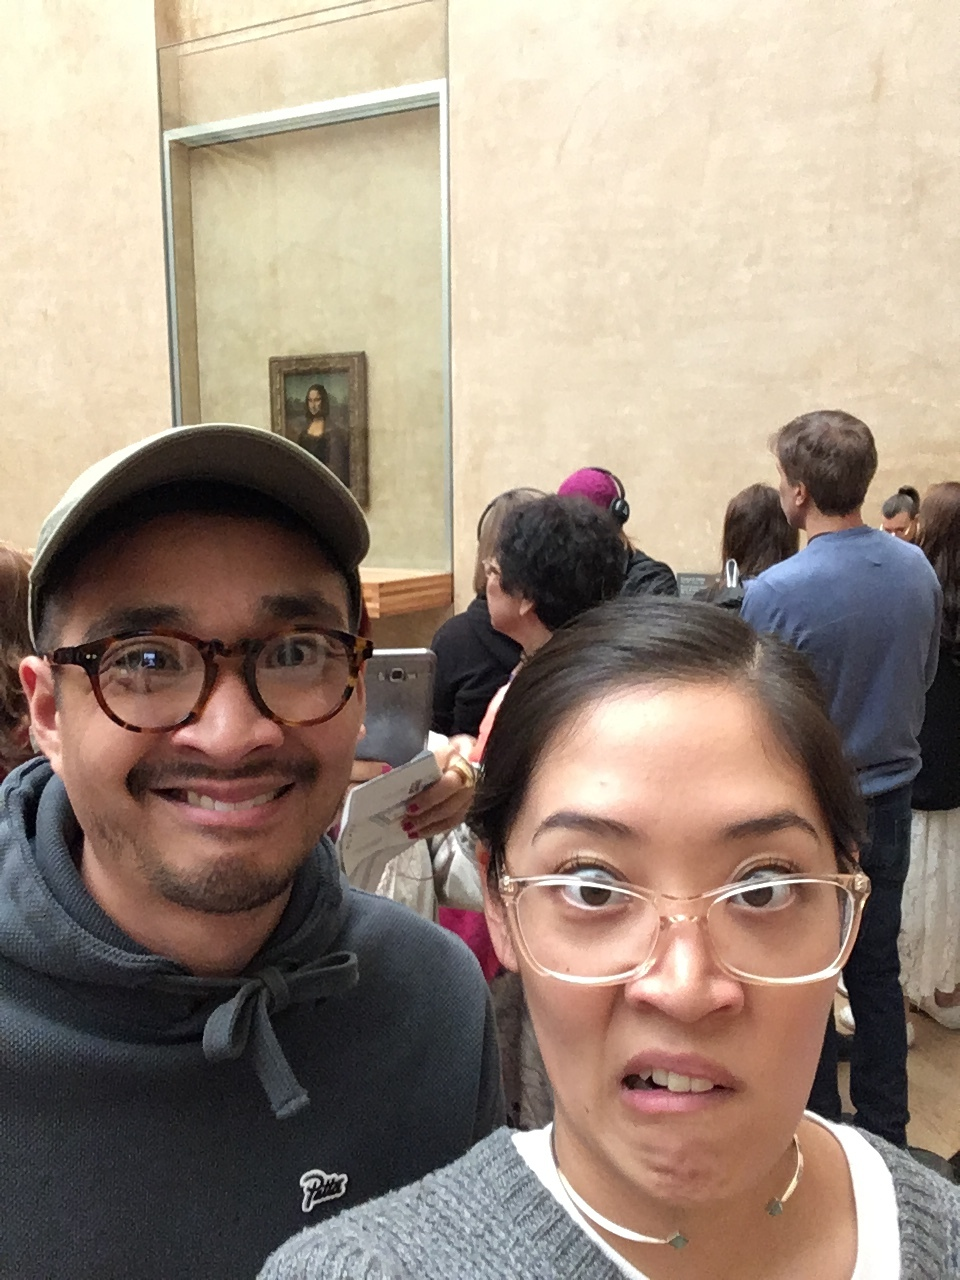 Mona Lisa smile. Psych.